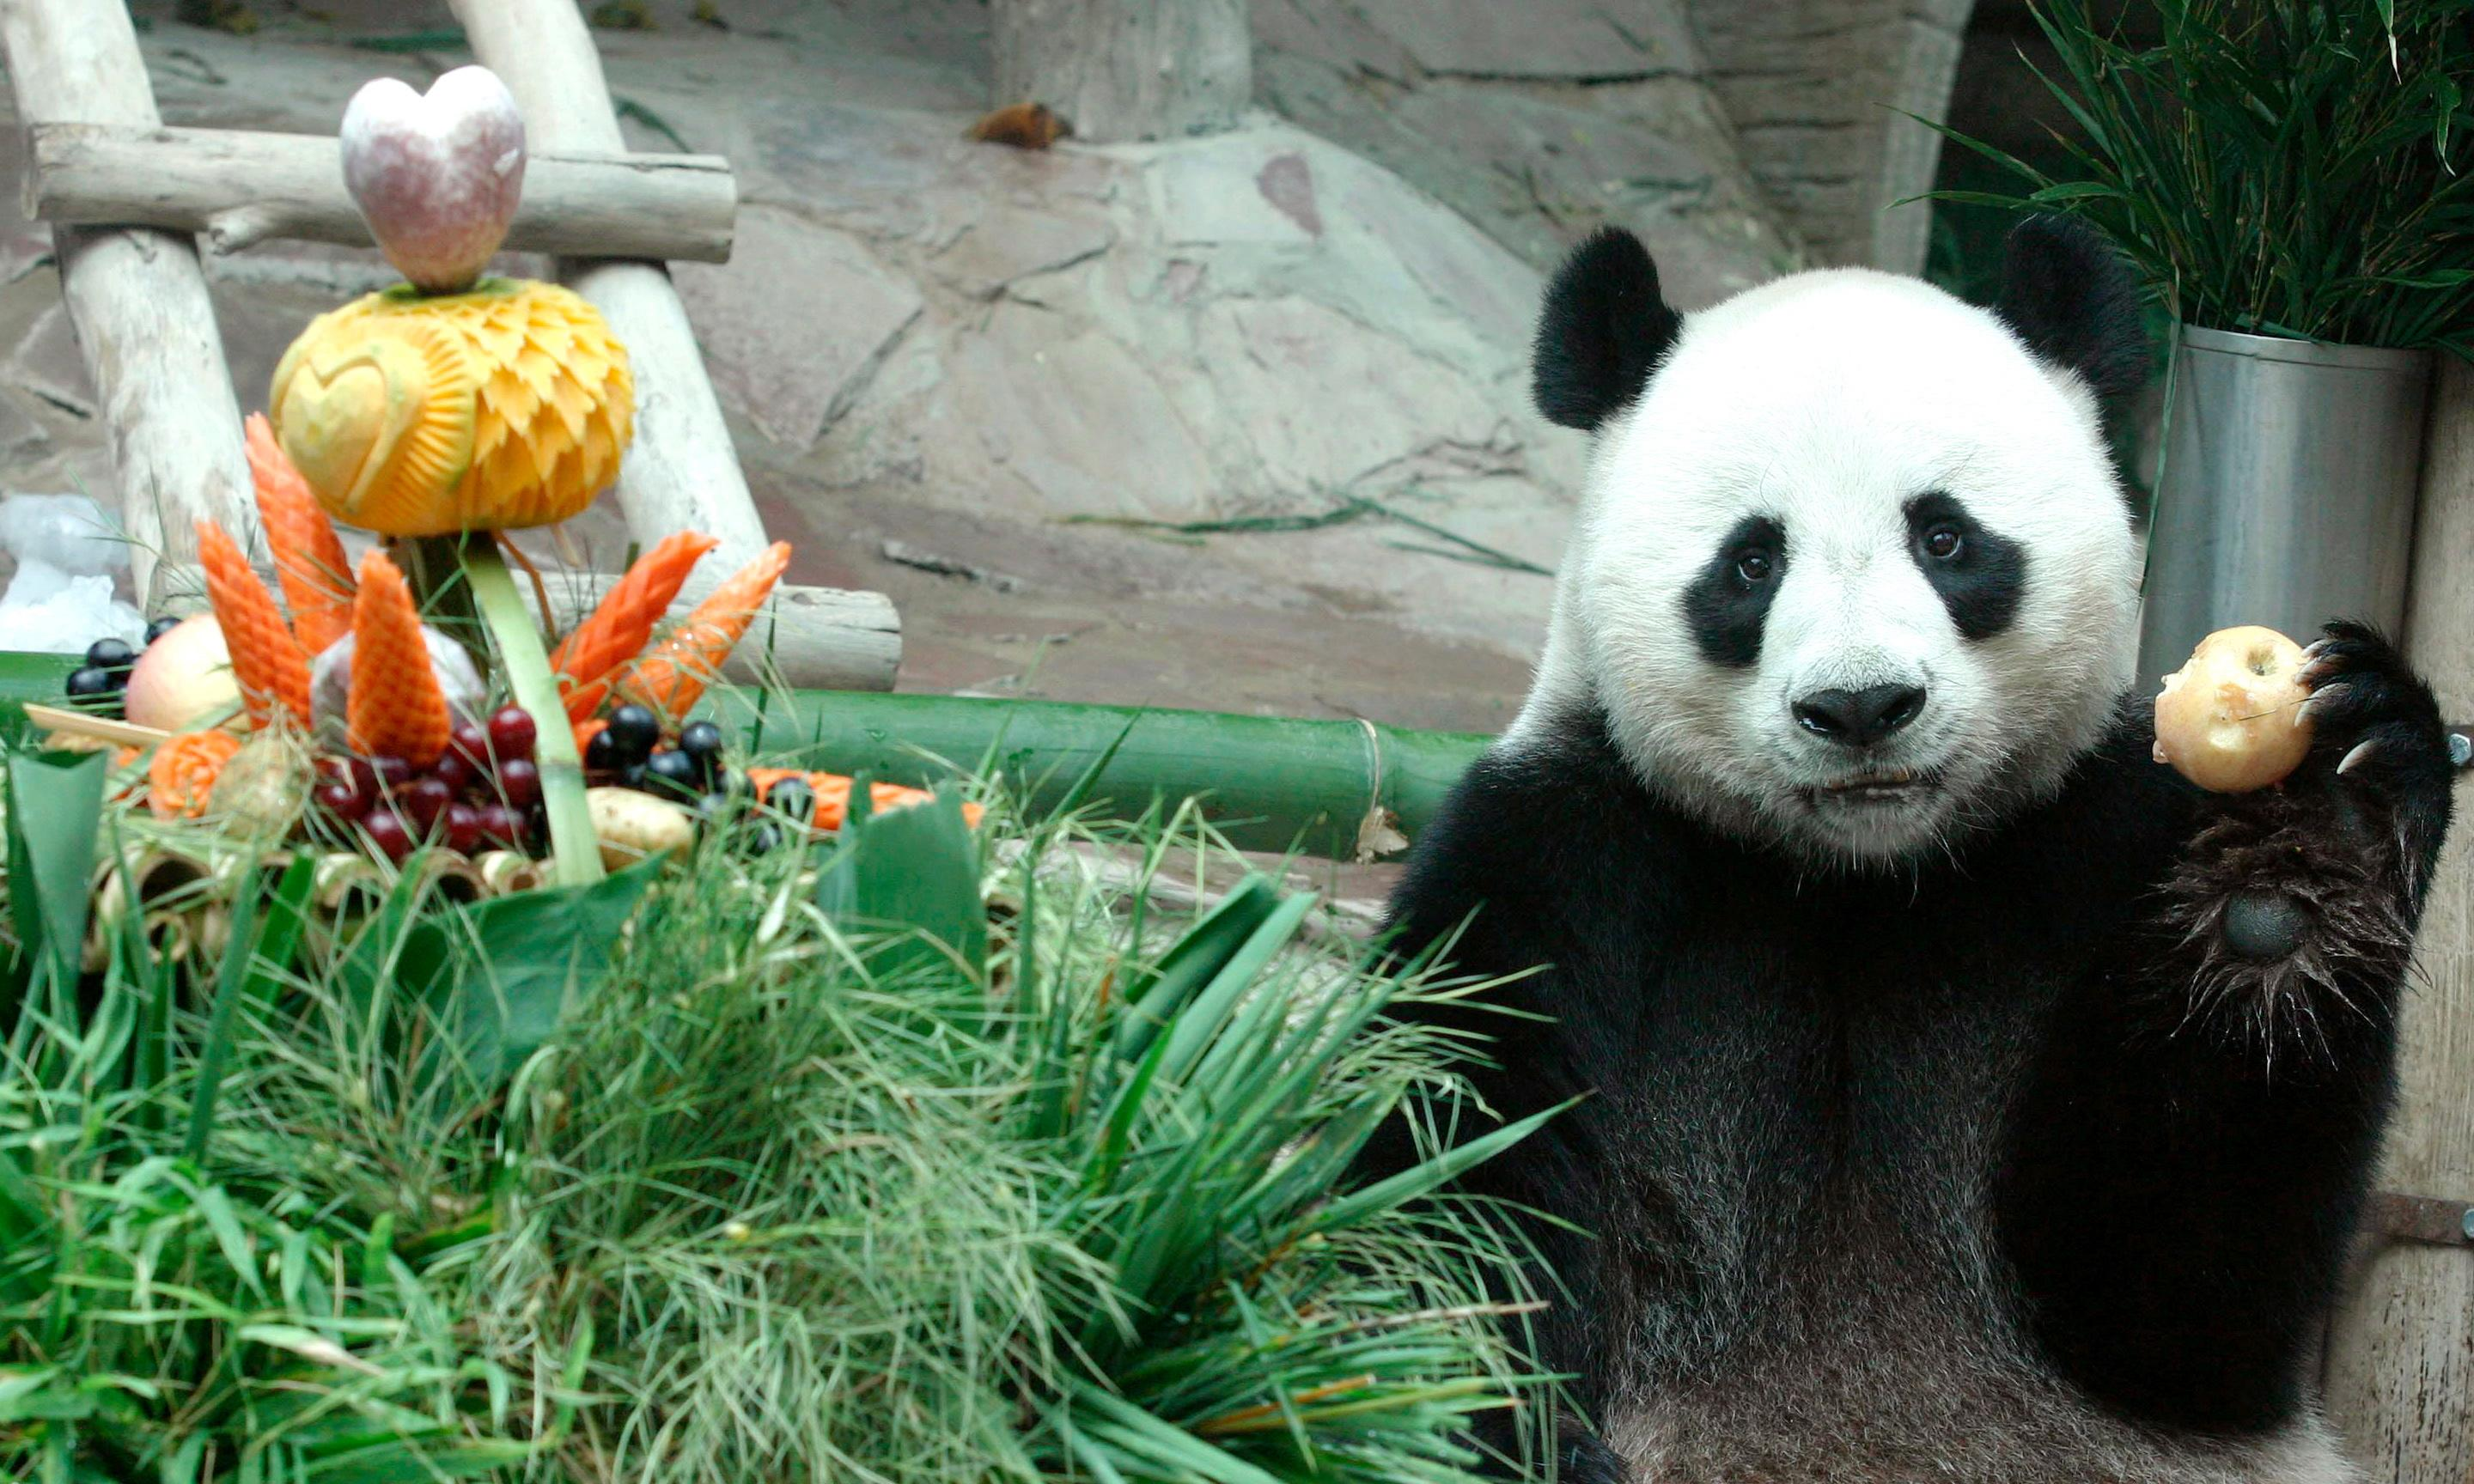 Outrage in China as giant panda on loan to Thailand zoo dies